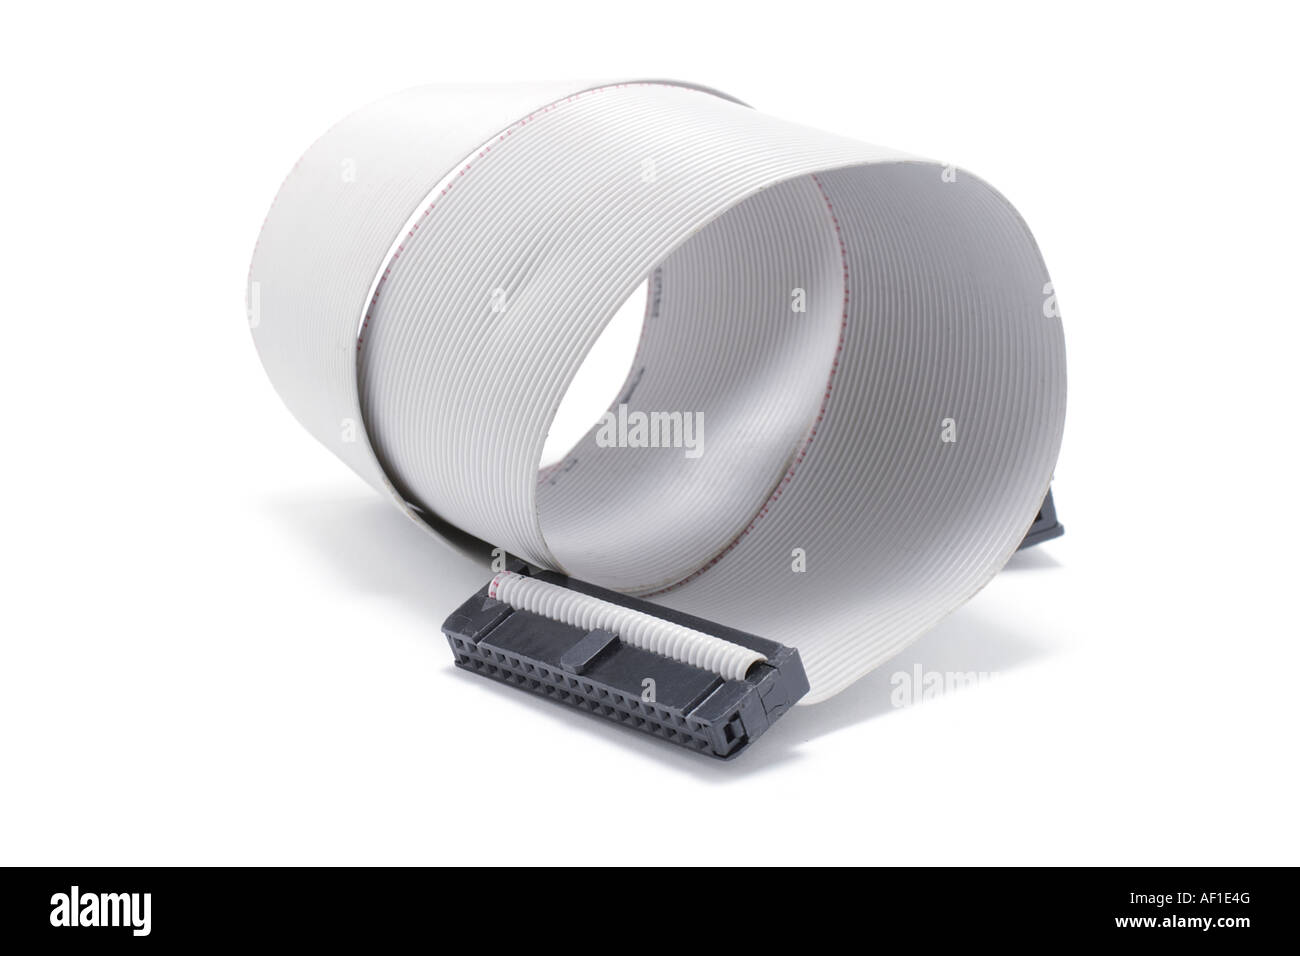 Computer Ribbon Cable : Computer ribbon cable stock photo royalty free image